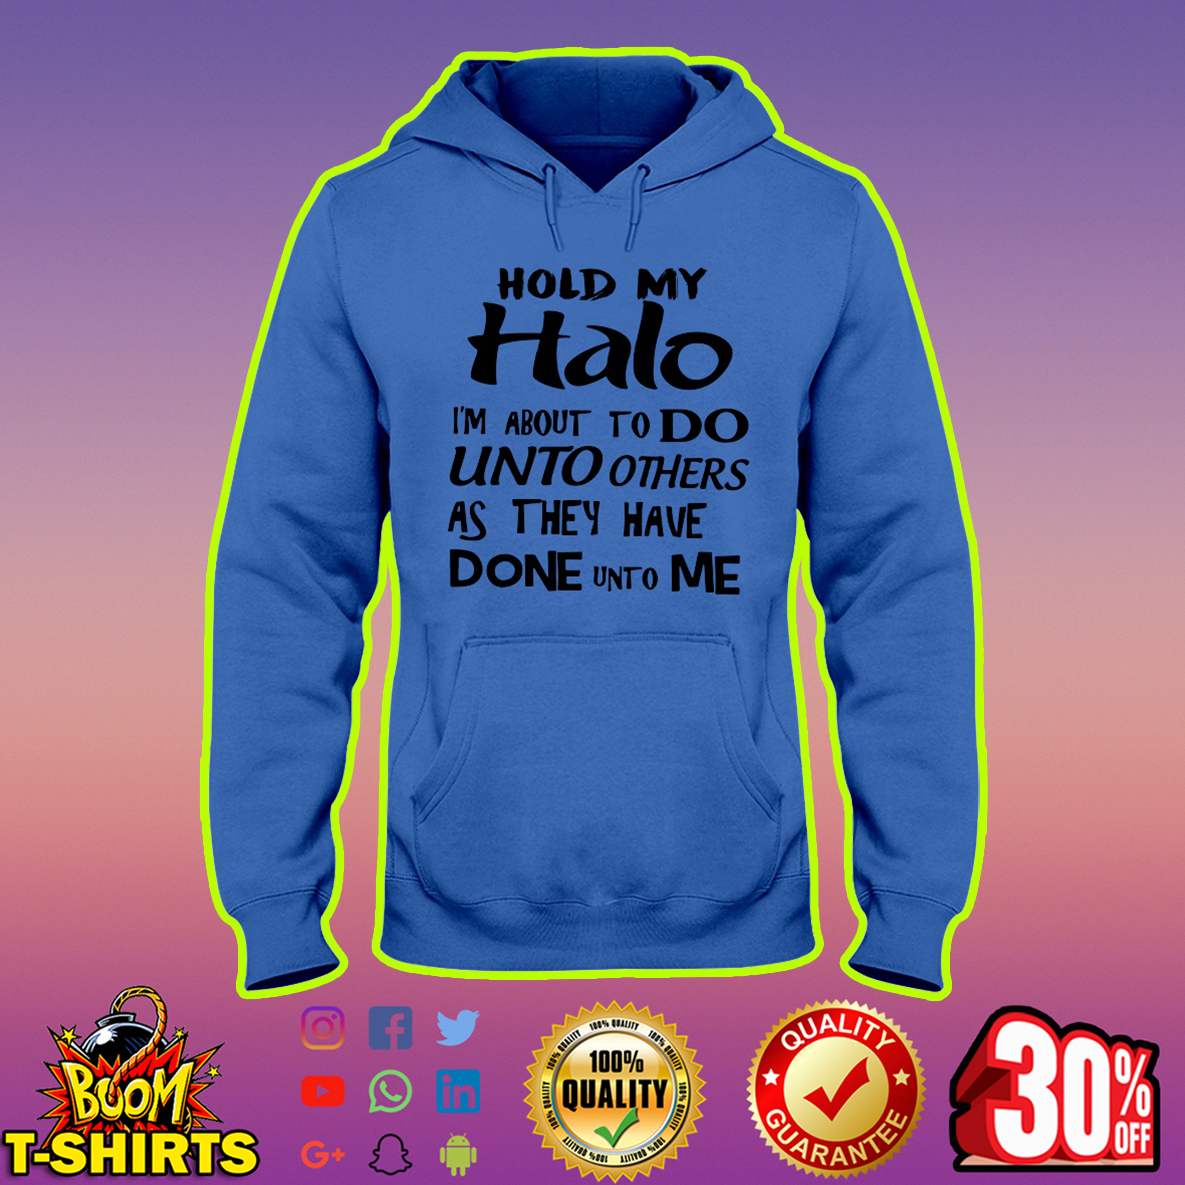 Hold my halo I'm about to do unto others as they have done unto me hoodie